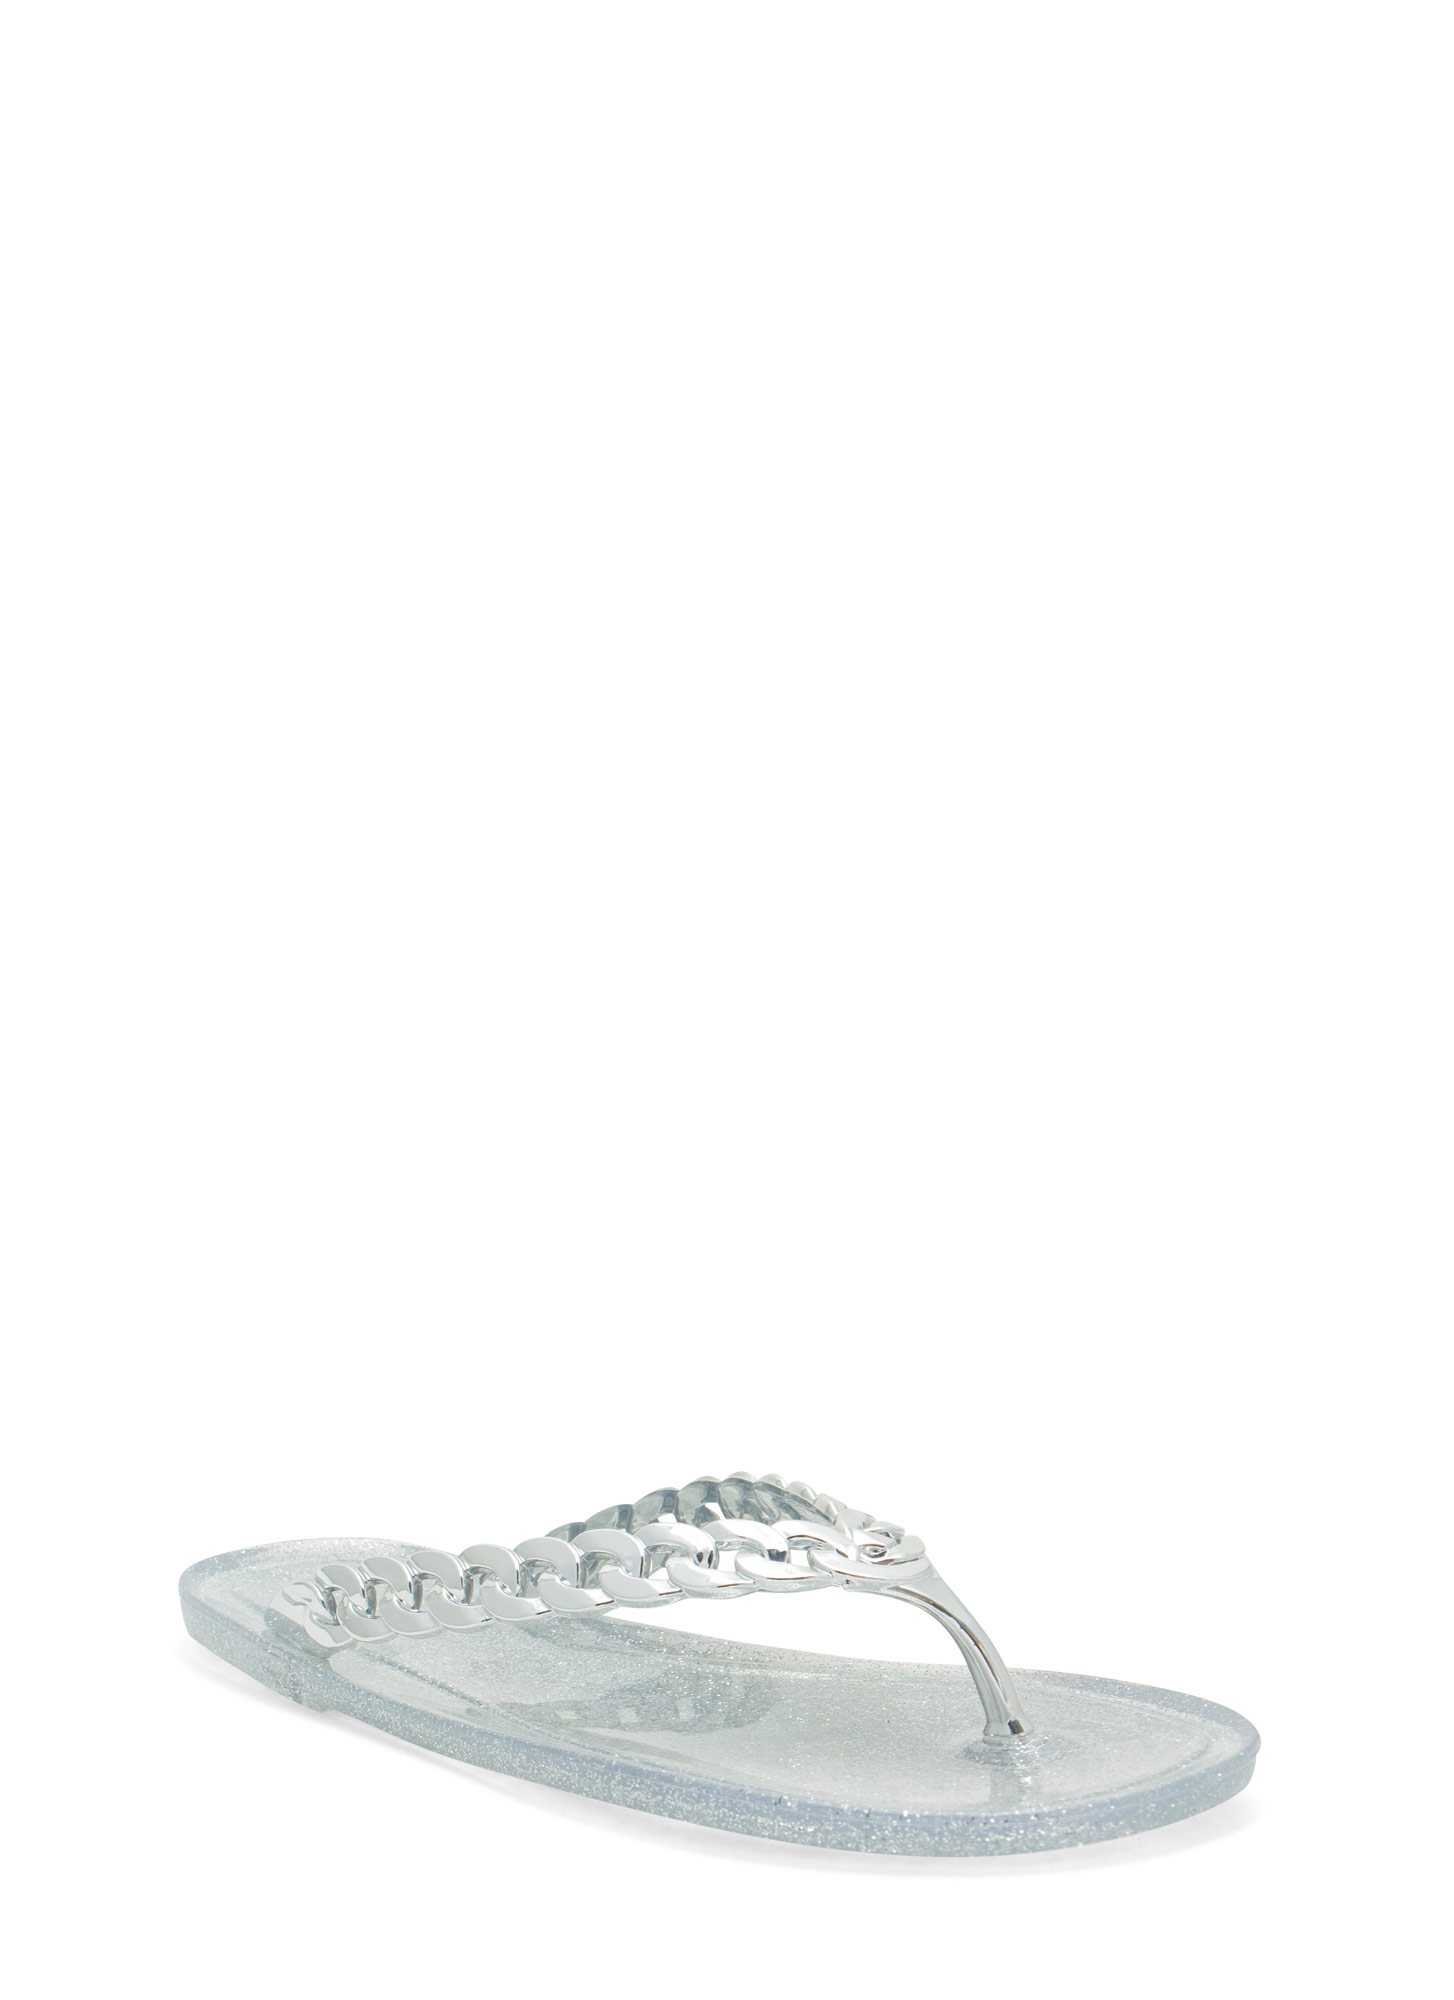 Missing Link Jelly Thong Sandals CLEAR